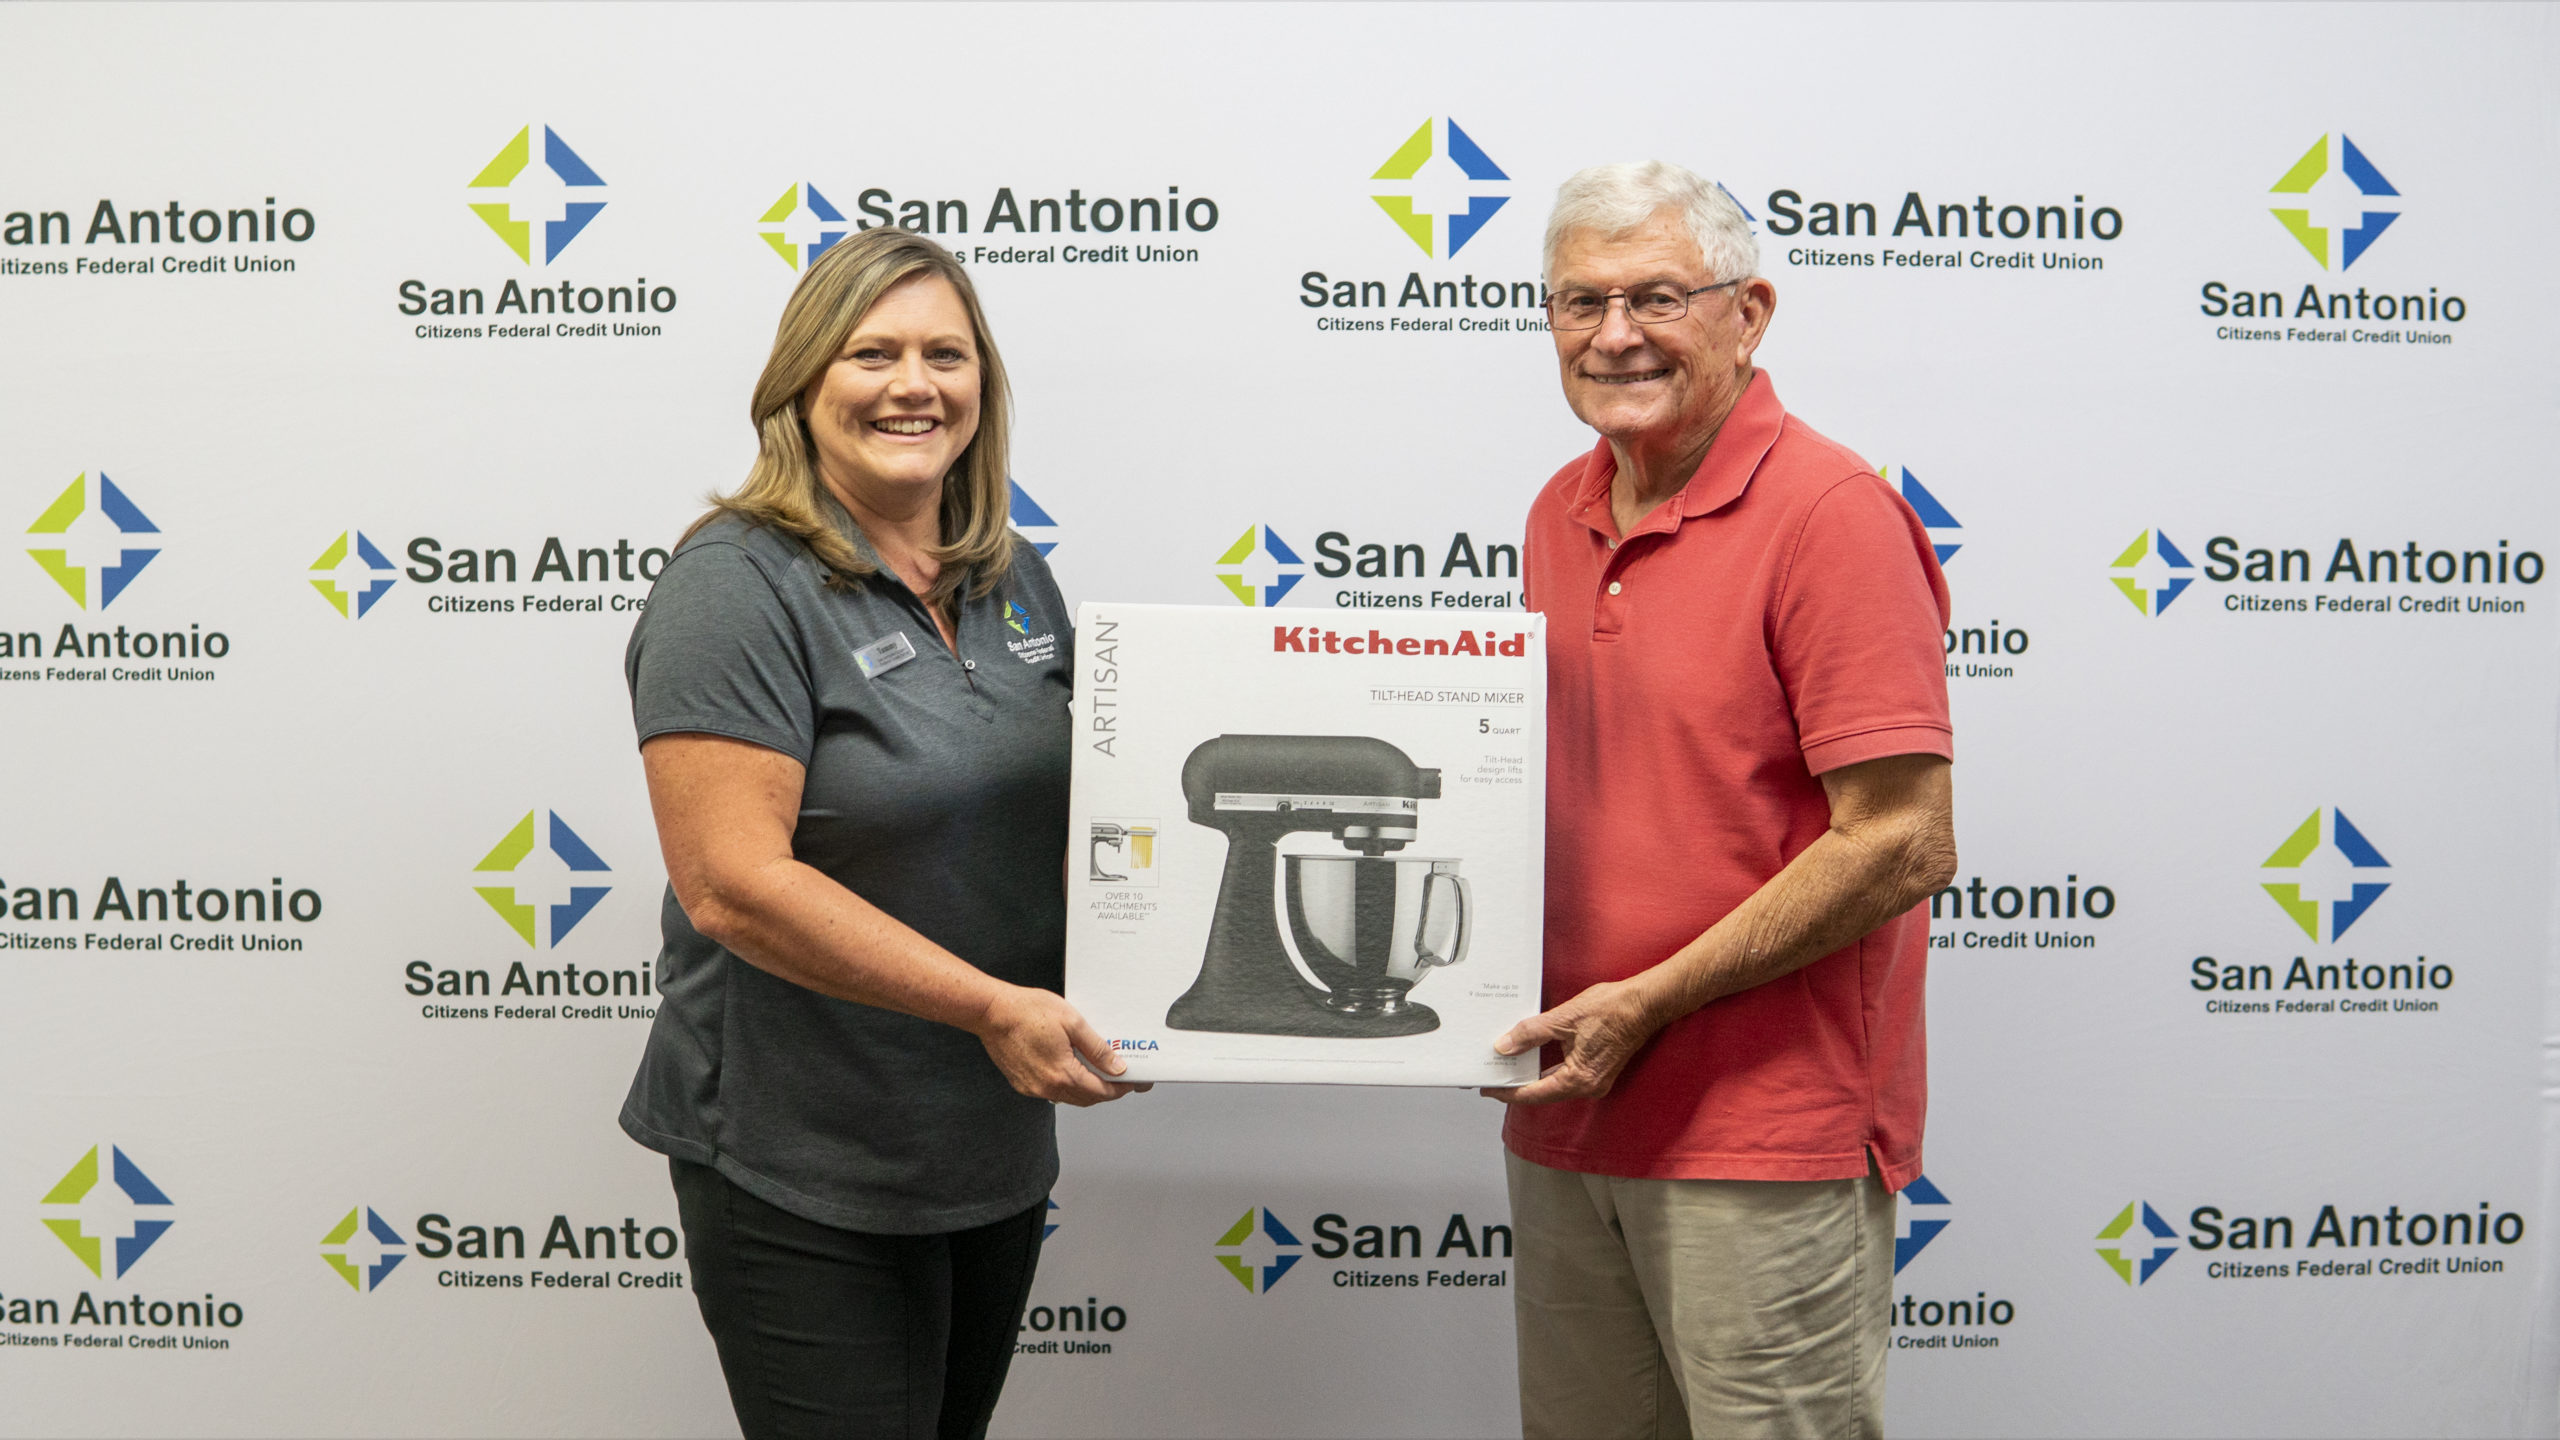 Picture of the Dade City Branch Manager along with the winner of SACFCU's Mobile Banking Contest.  Both of them are holding up the price of a Kitchenaid Stand Mixer